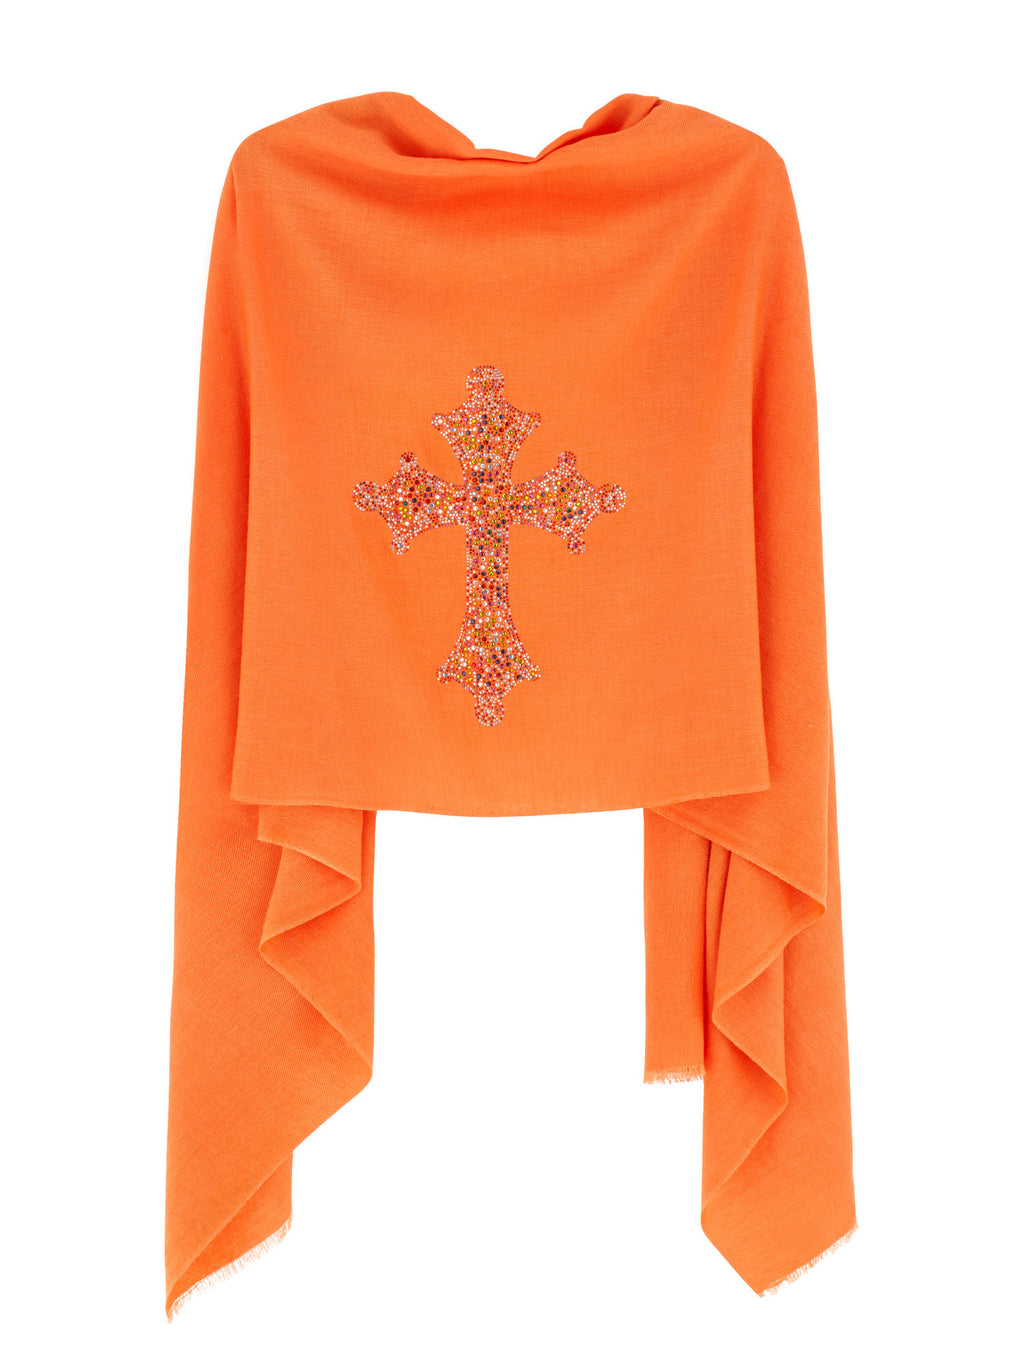 Crystal embellished cashmere pashmina shawl, orange with cross